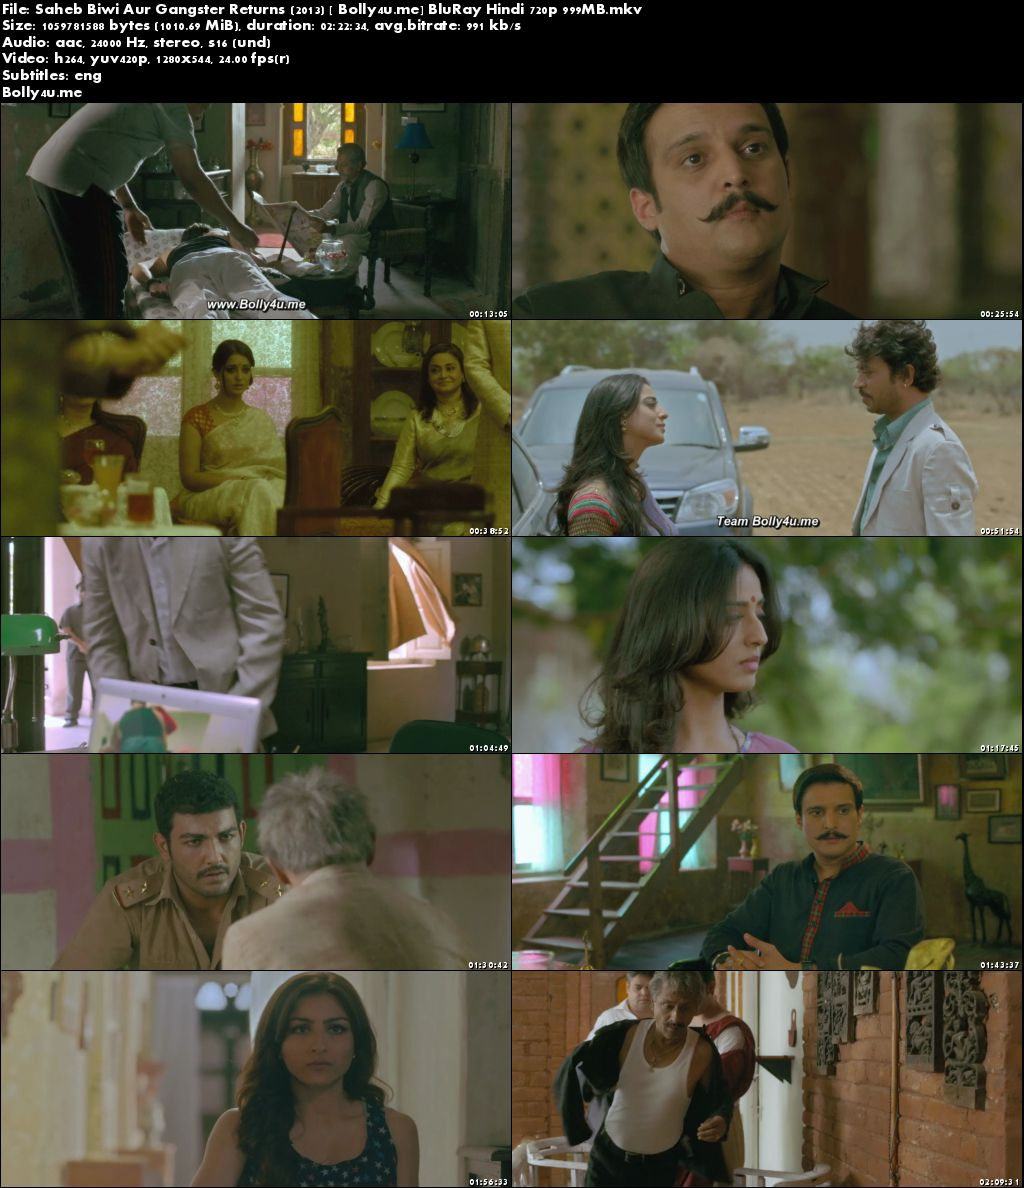 Saheb Biwi Aur Gangster Returns 2013 BluRay 400MB Hindi 480p ESub Download